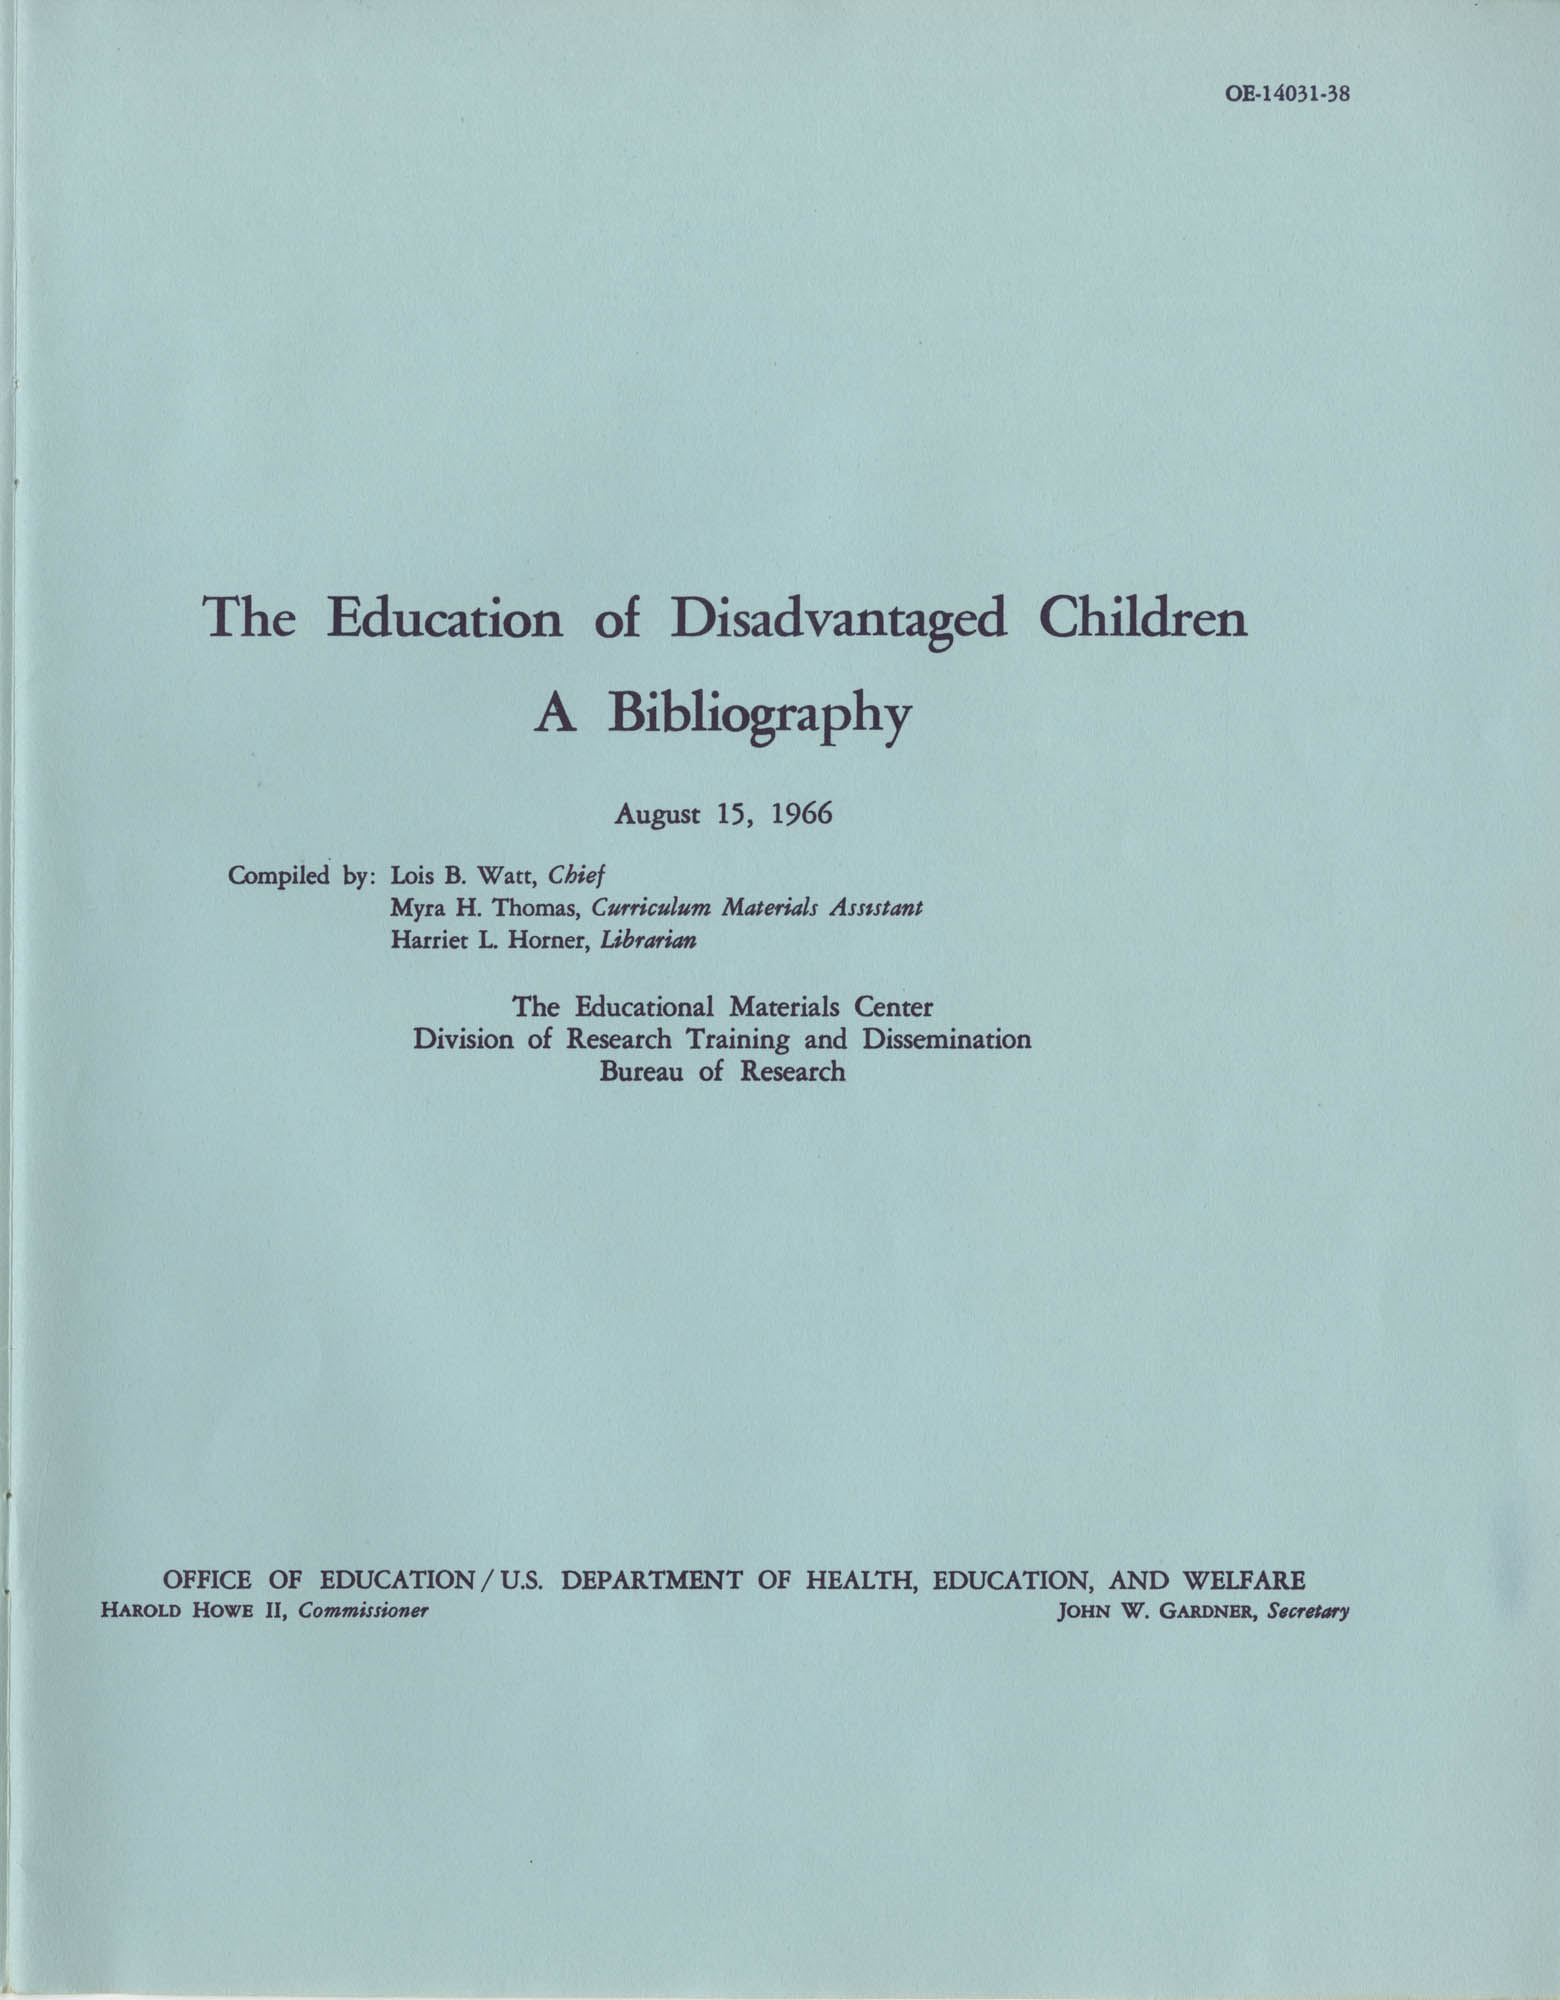 The Education of Disadvantaged Children, A Bibliography, Title Page